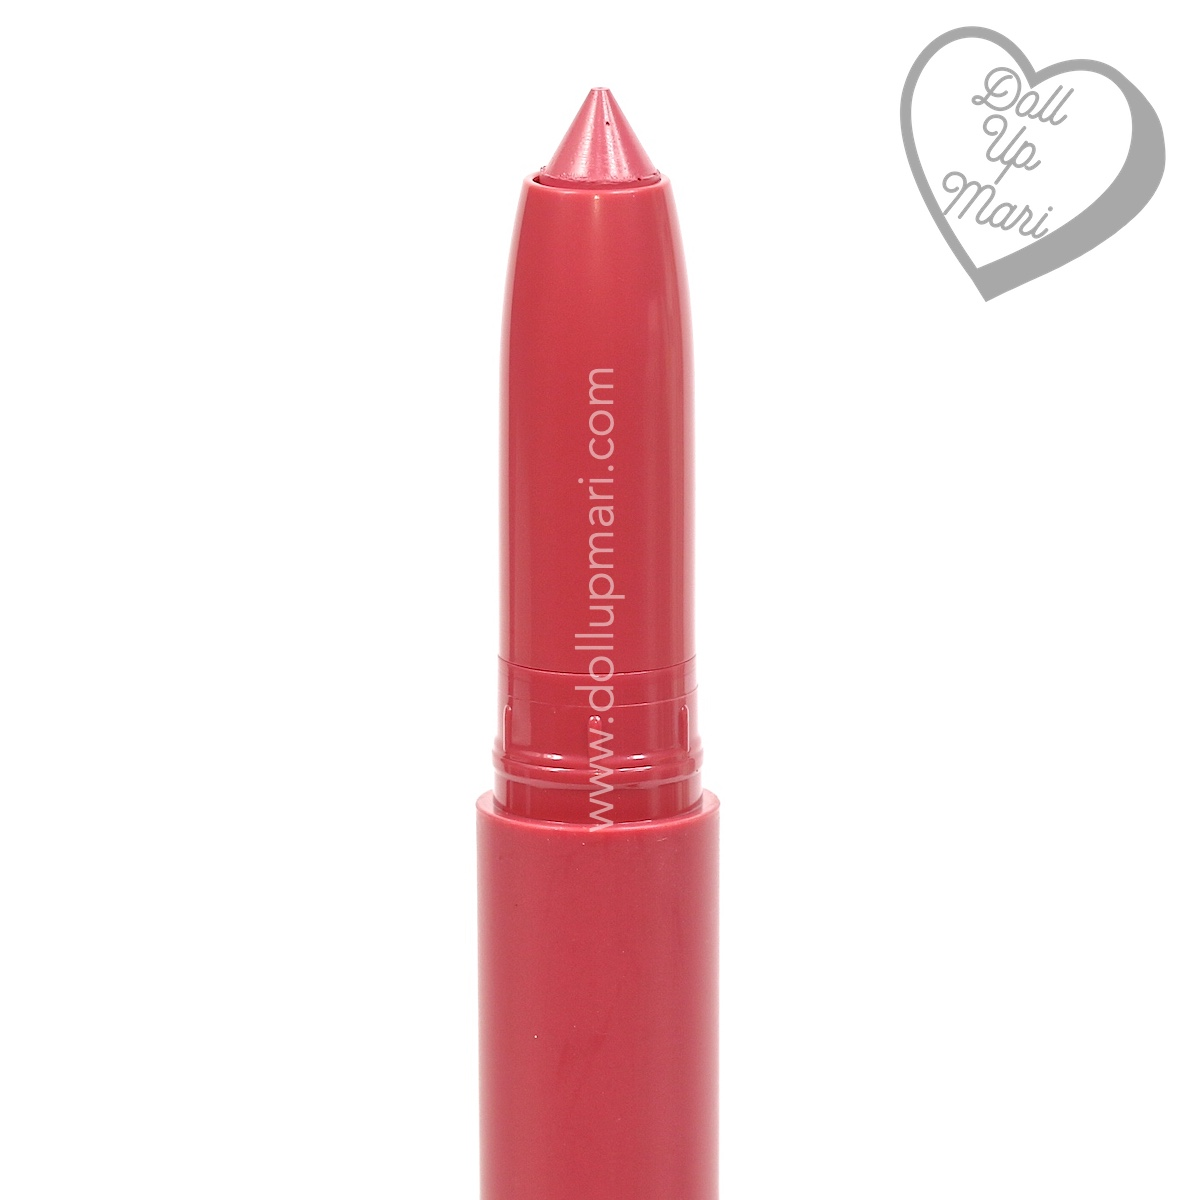 Tip of 80 Run The World shade of Maybelline Superstay Ink Crayon 8HR Longwear Matte Lipstick